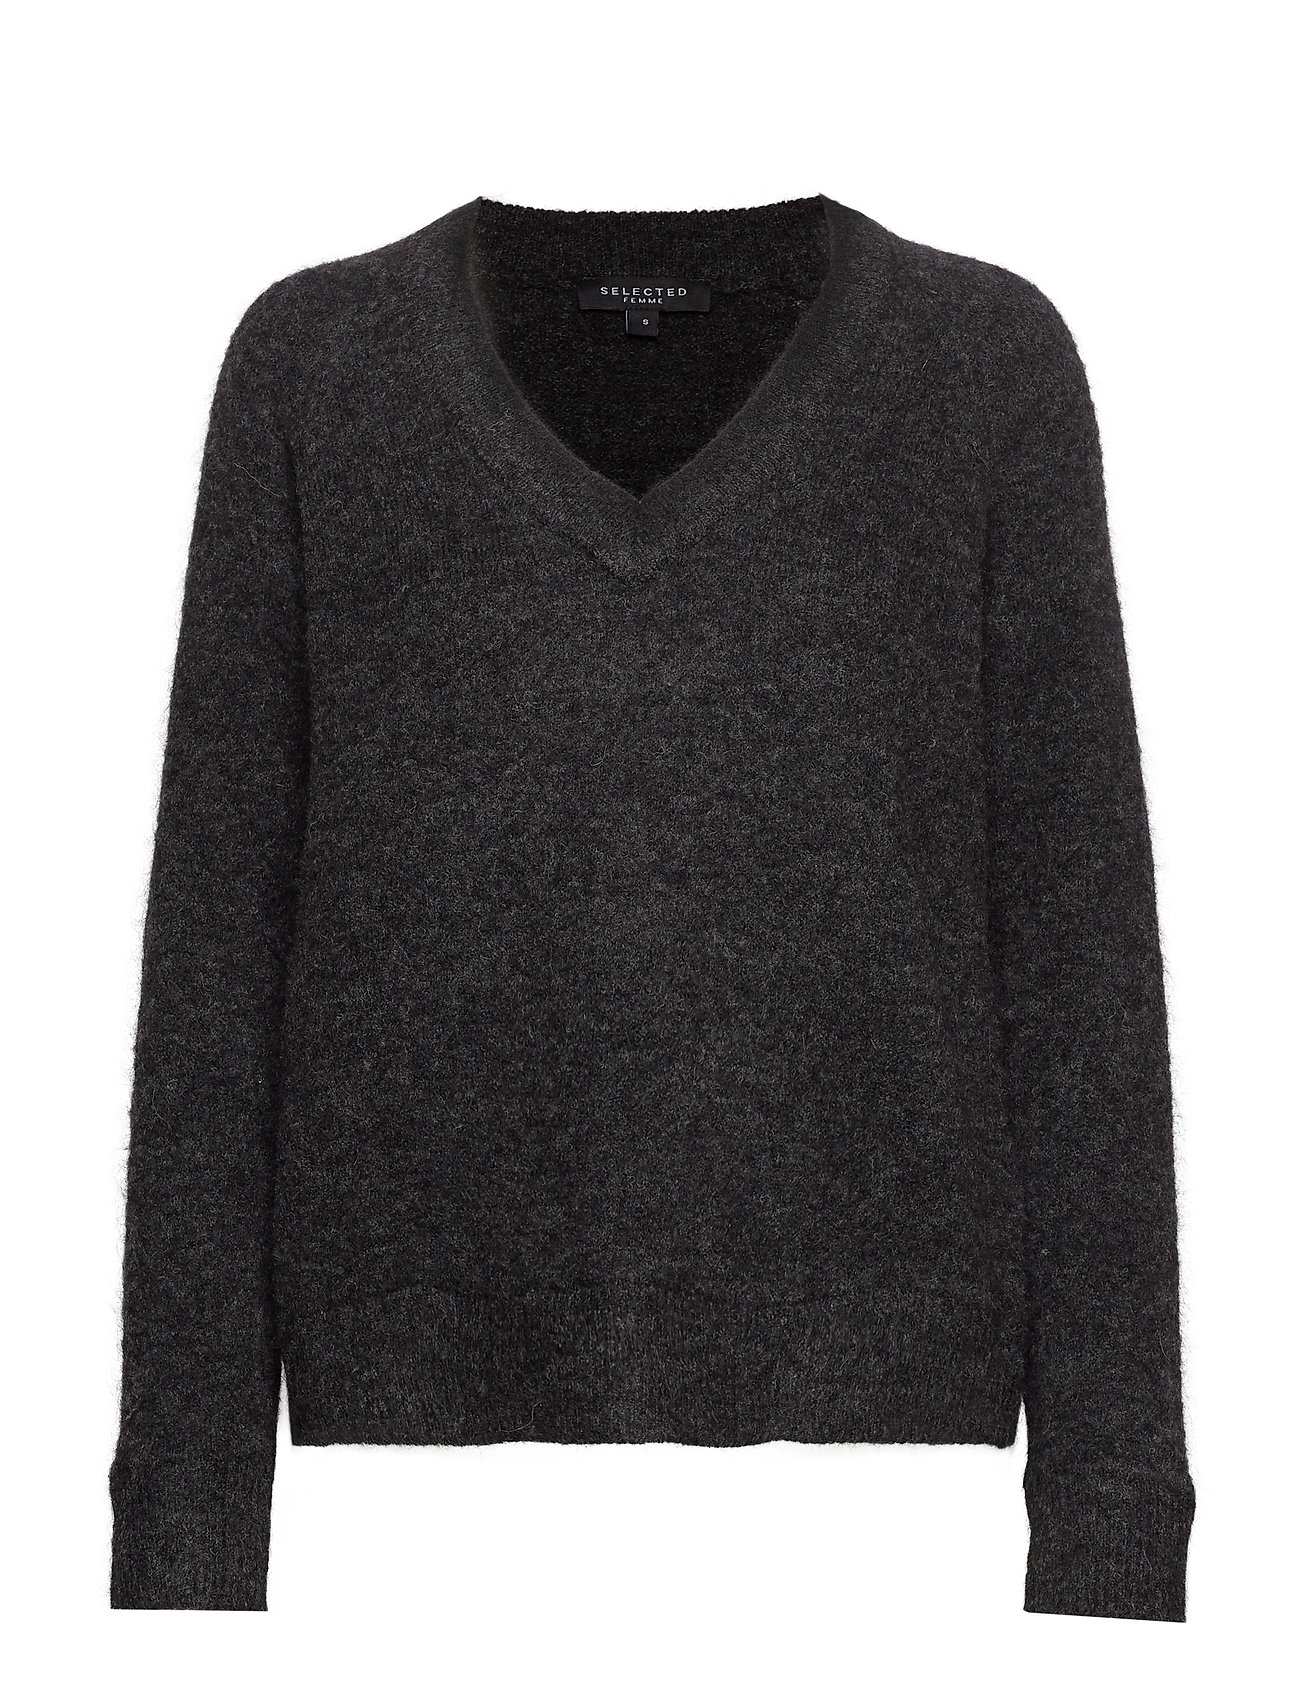 Selected Femme SLFLANNA LS KNIT V-NECK NOOS - DARK GREY MELANGE